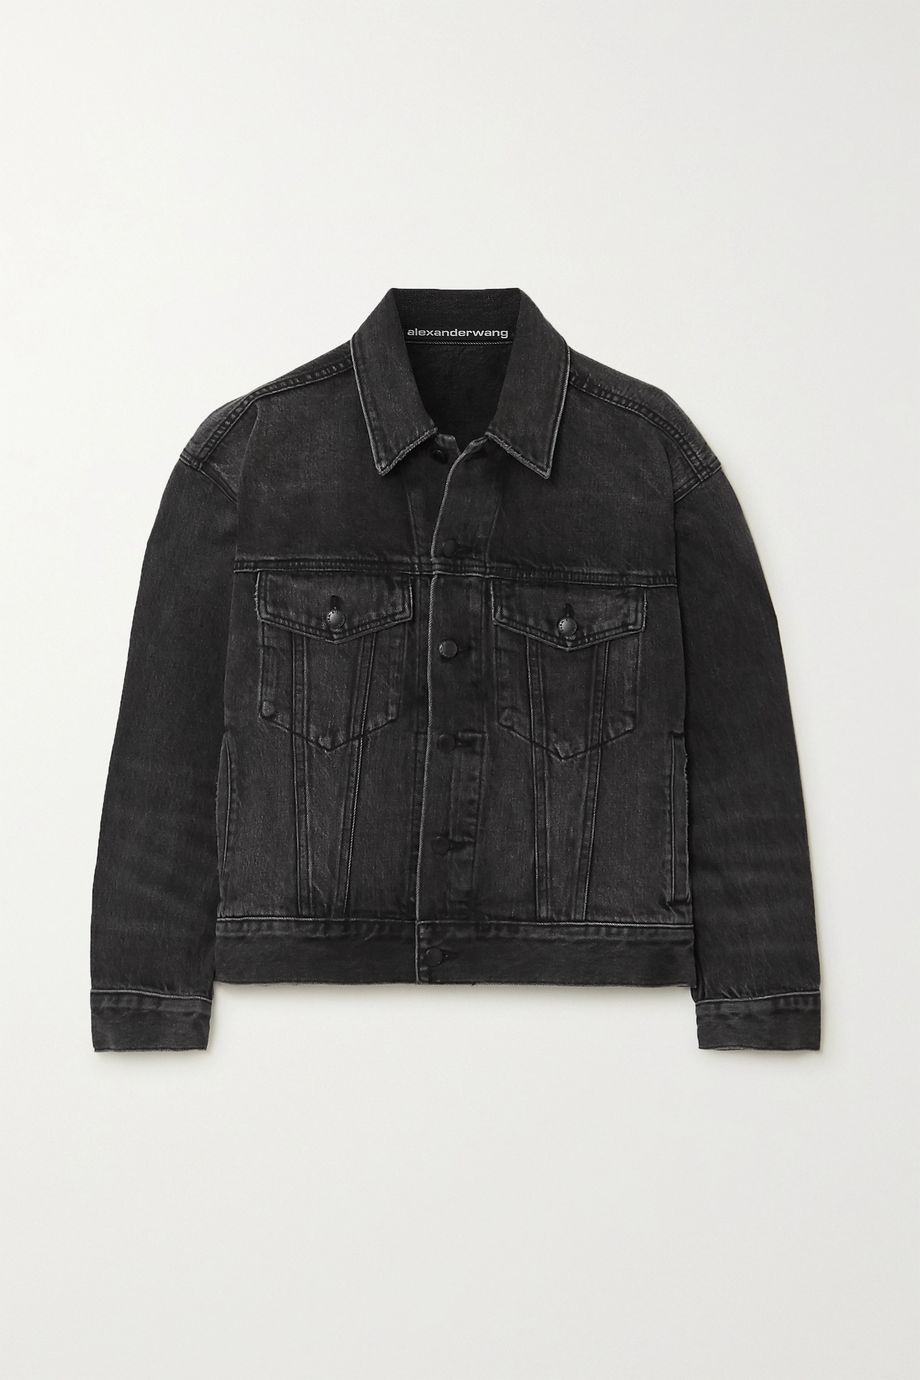 Alexander Wang Game denim jacket